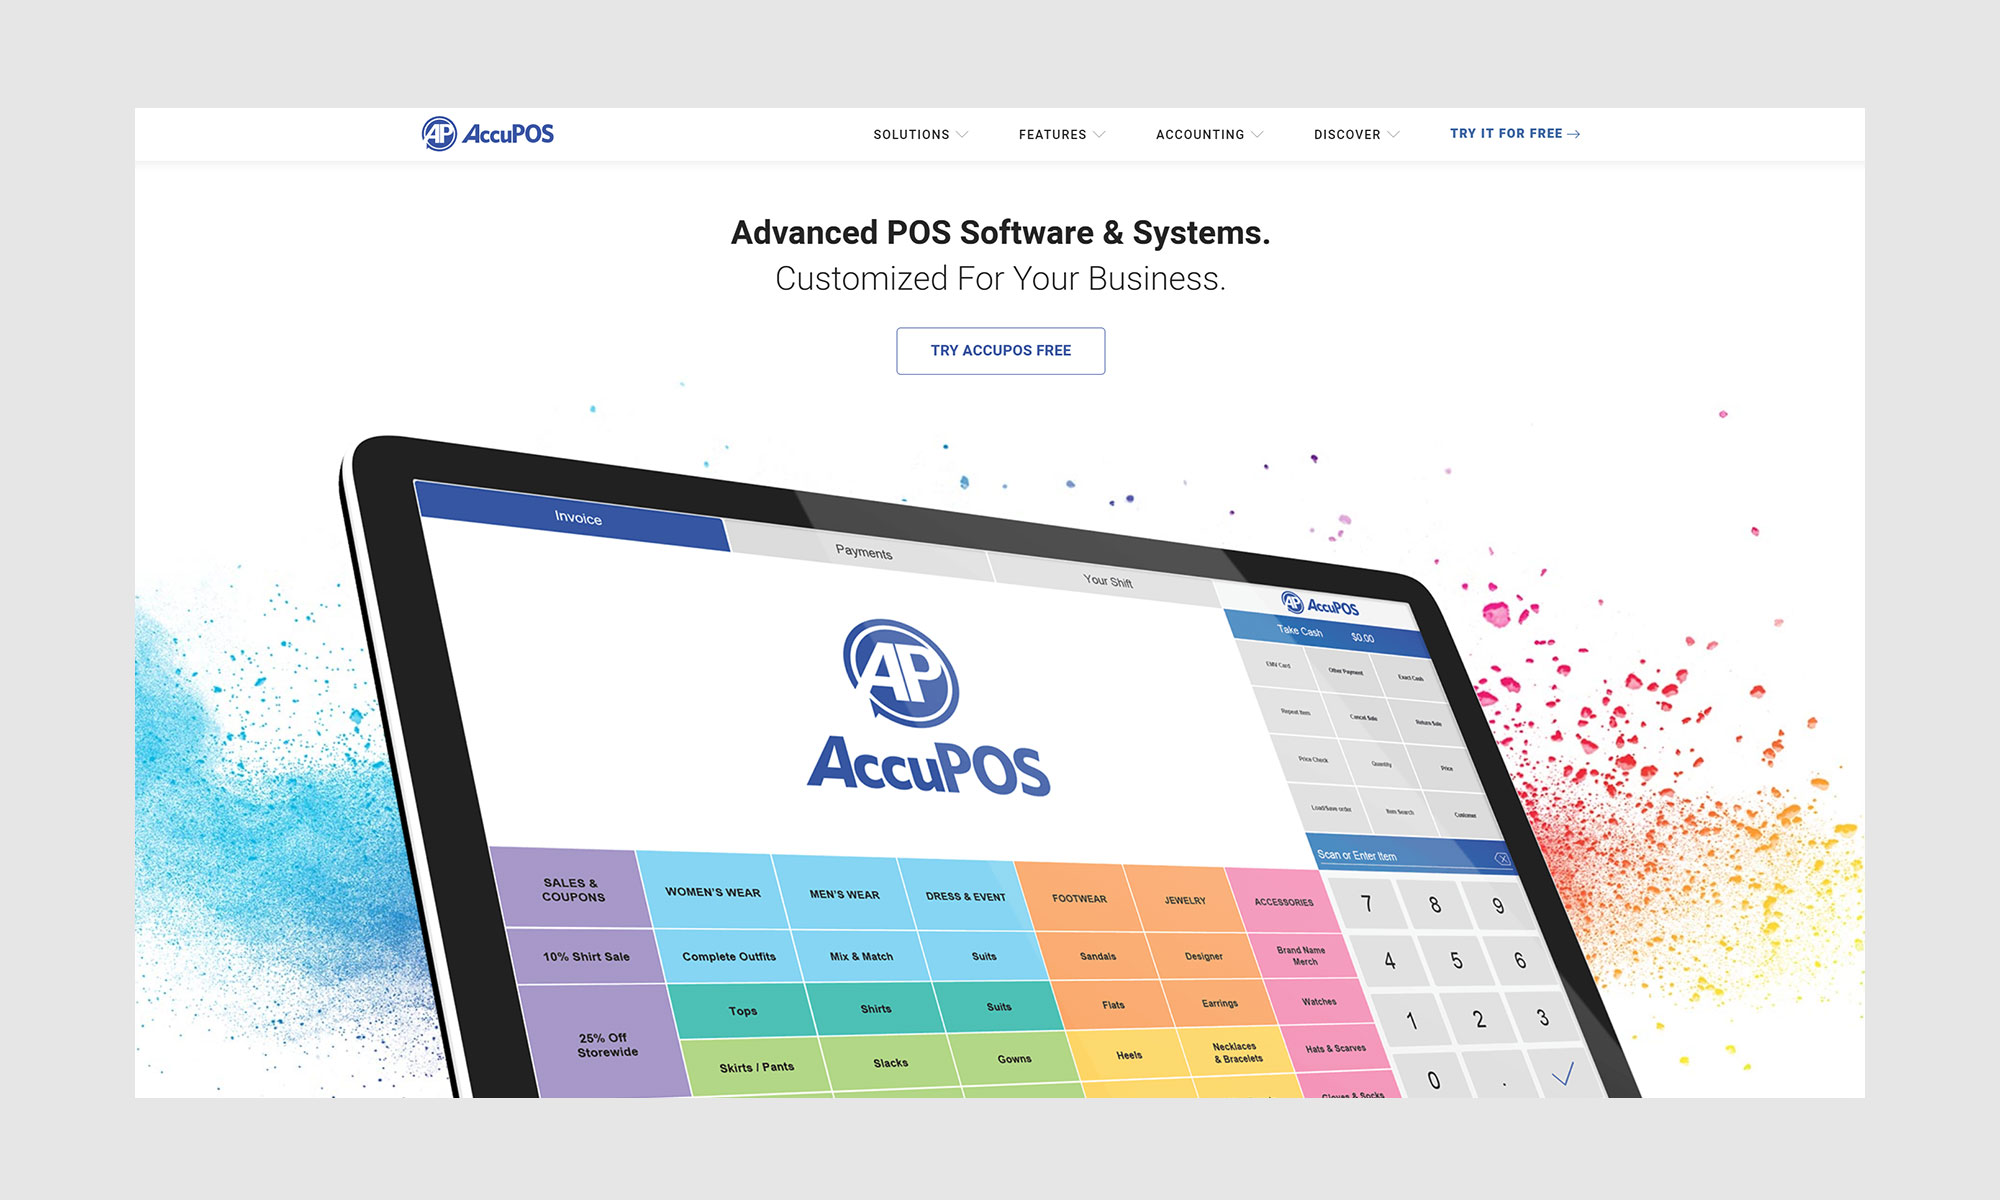 AccuPOS homepage design by CHIMENTO Agency